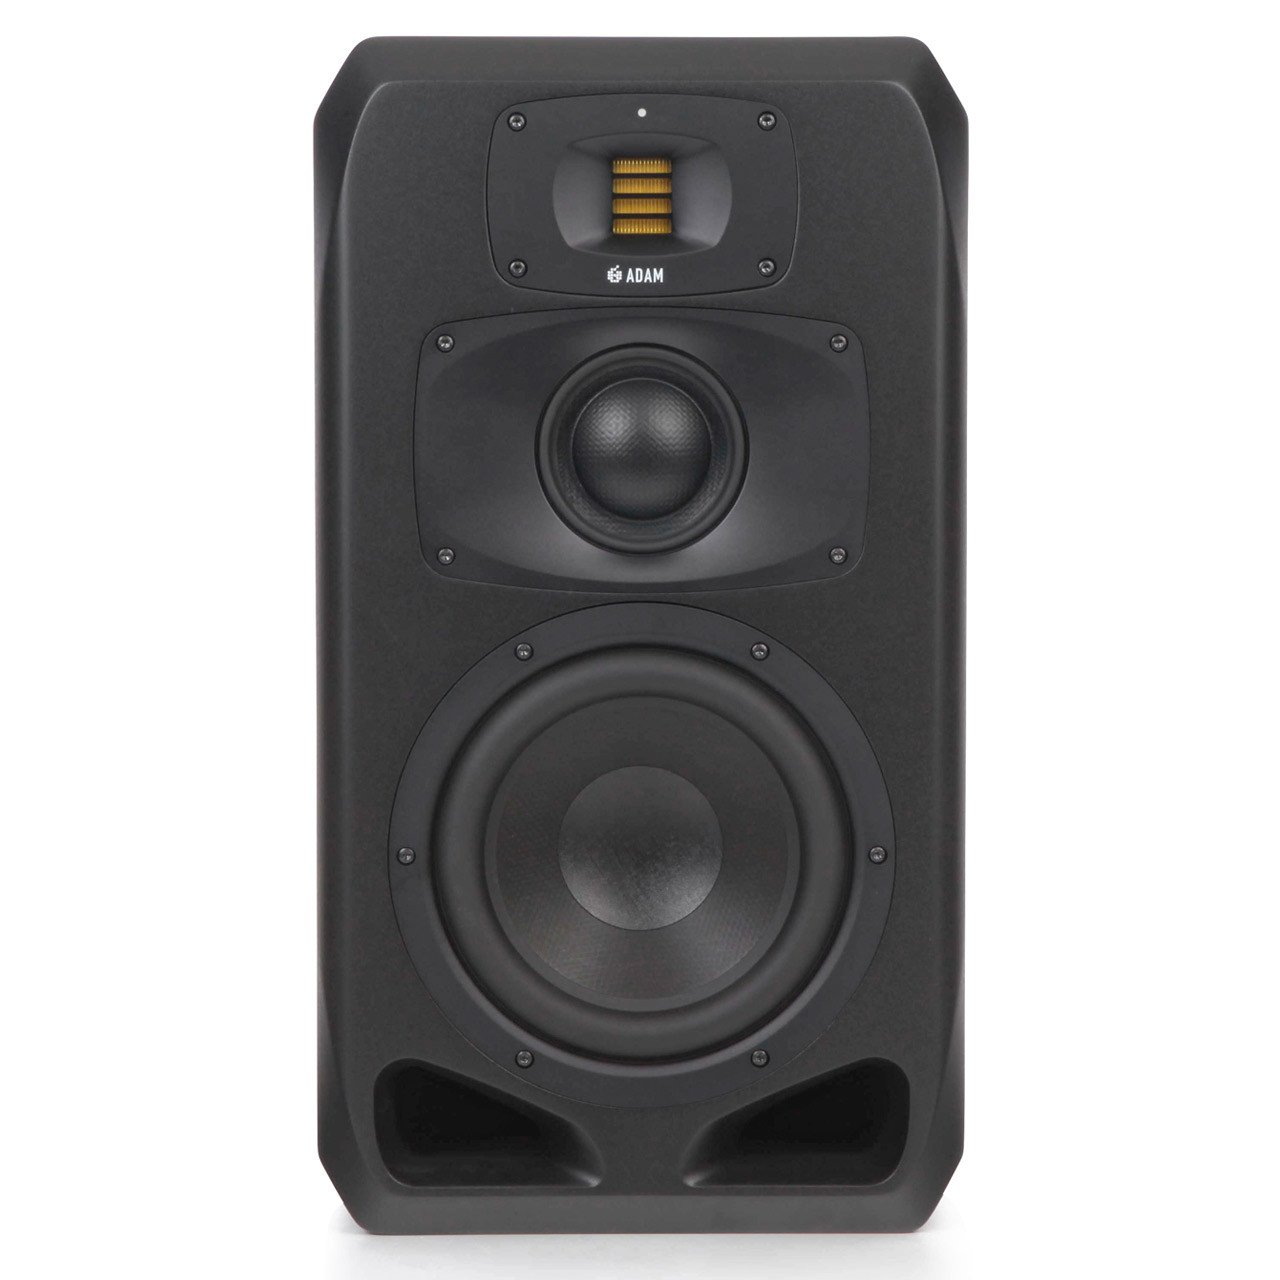 Adam S3V Active Midfield Studio Reference Monitors (Pair)